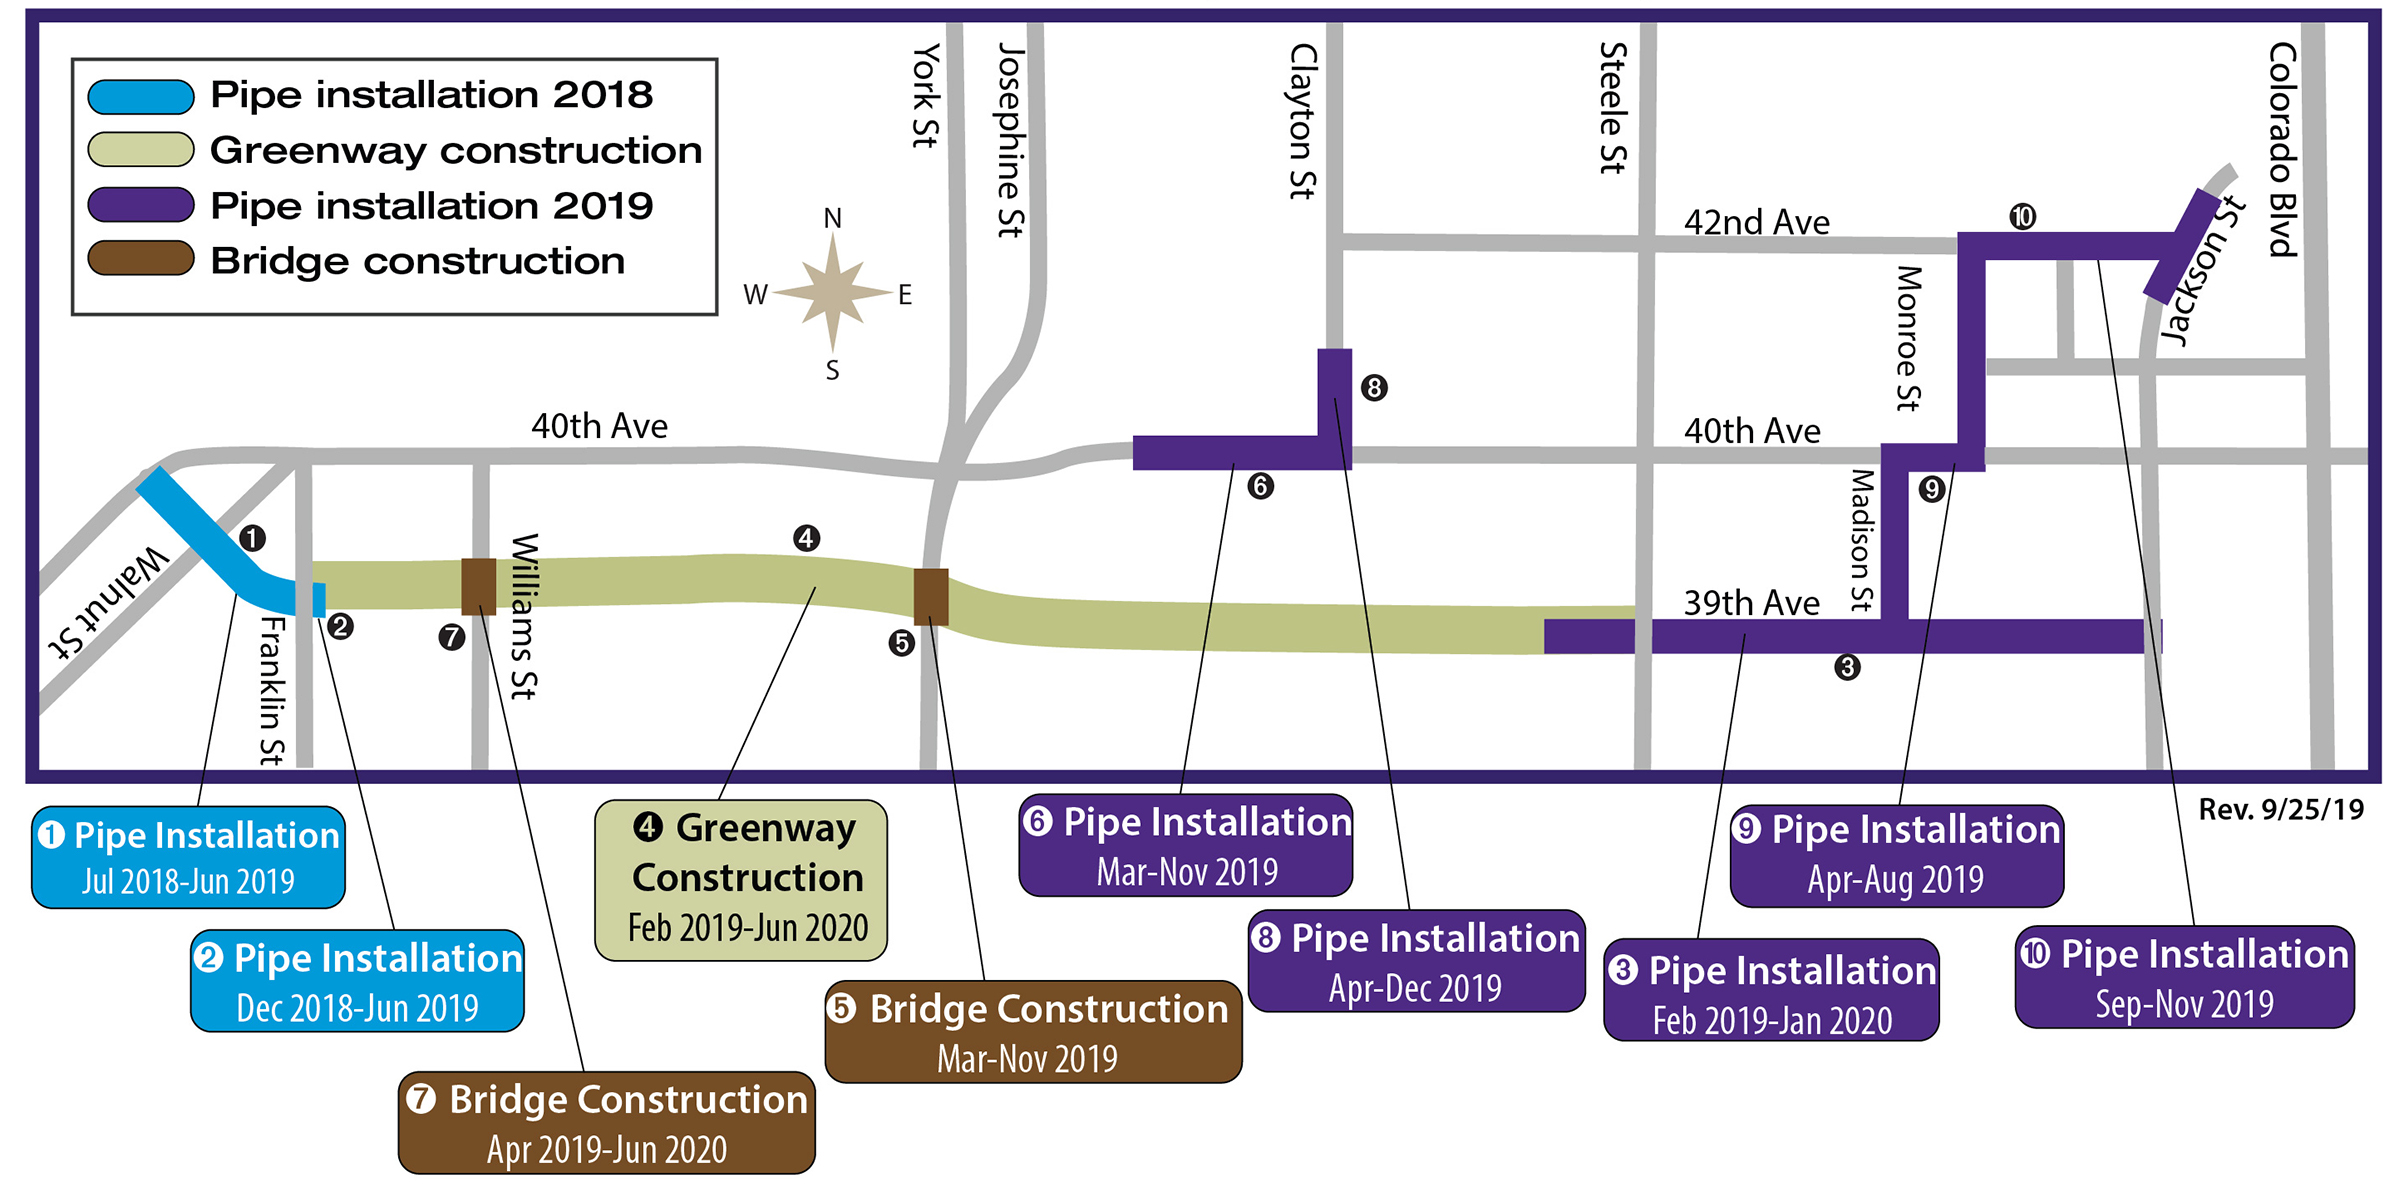 map of projects along 39th avenue with start dates listed